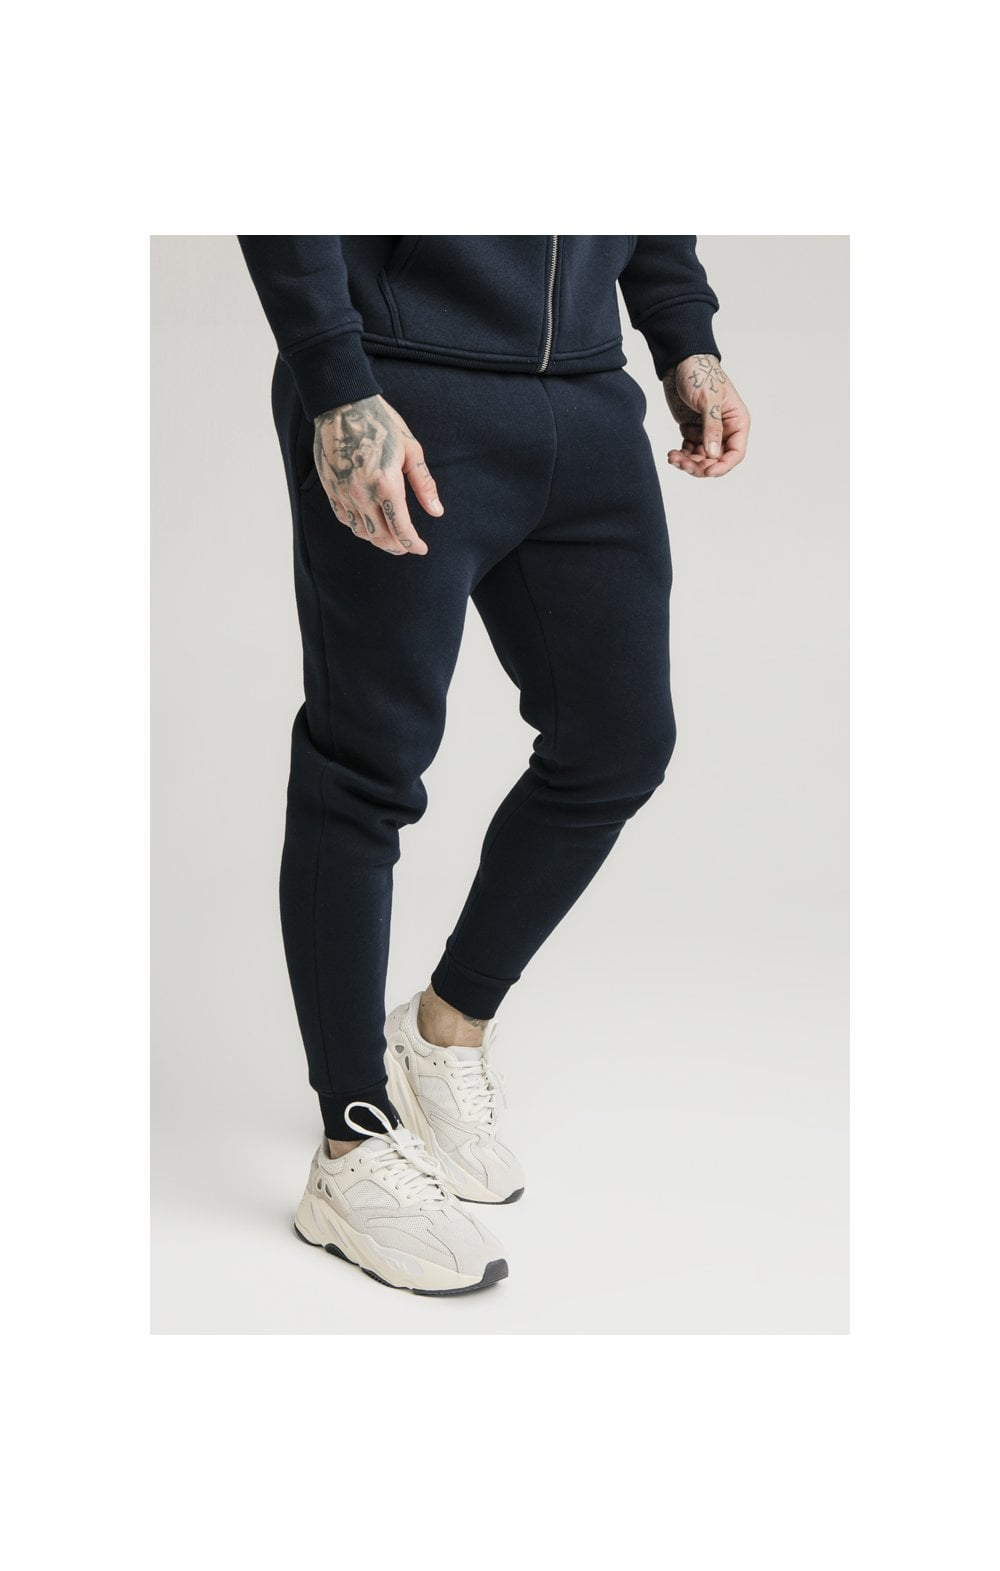 SikSilk Muscle Fit Jogger – Navy (2)